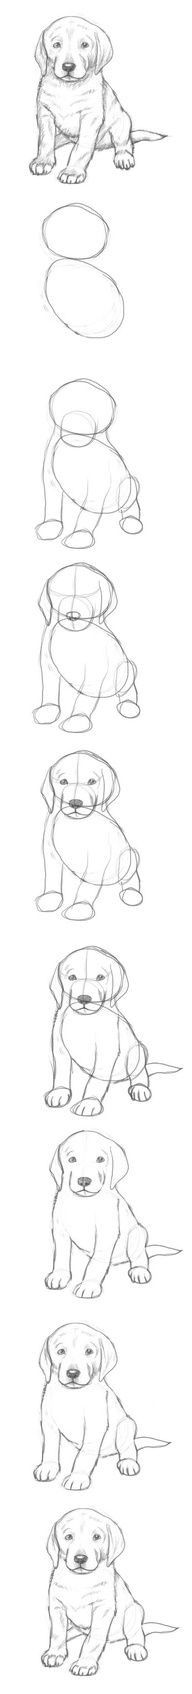 puppy art projects for kids \ puppy art . puppy art projects for kids . puppy art for kids . puppy art for toddlers . Pencil Art Drawings, Art Drawings Sketches, Easy Drawings, Drawing Lessons, Drawing Techniques, Animal Sketches, Animal Drawings, Dog Drawing Simple, Learn To Draw